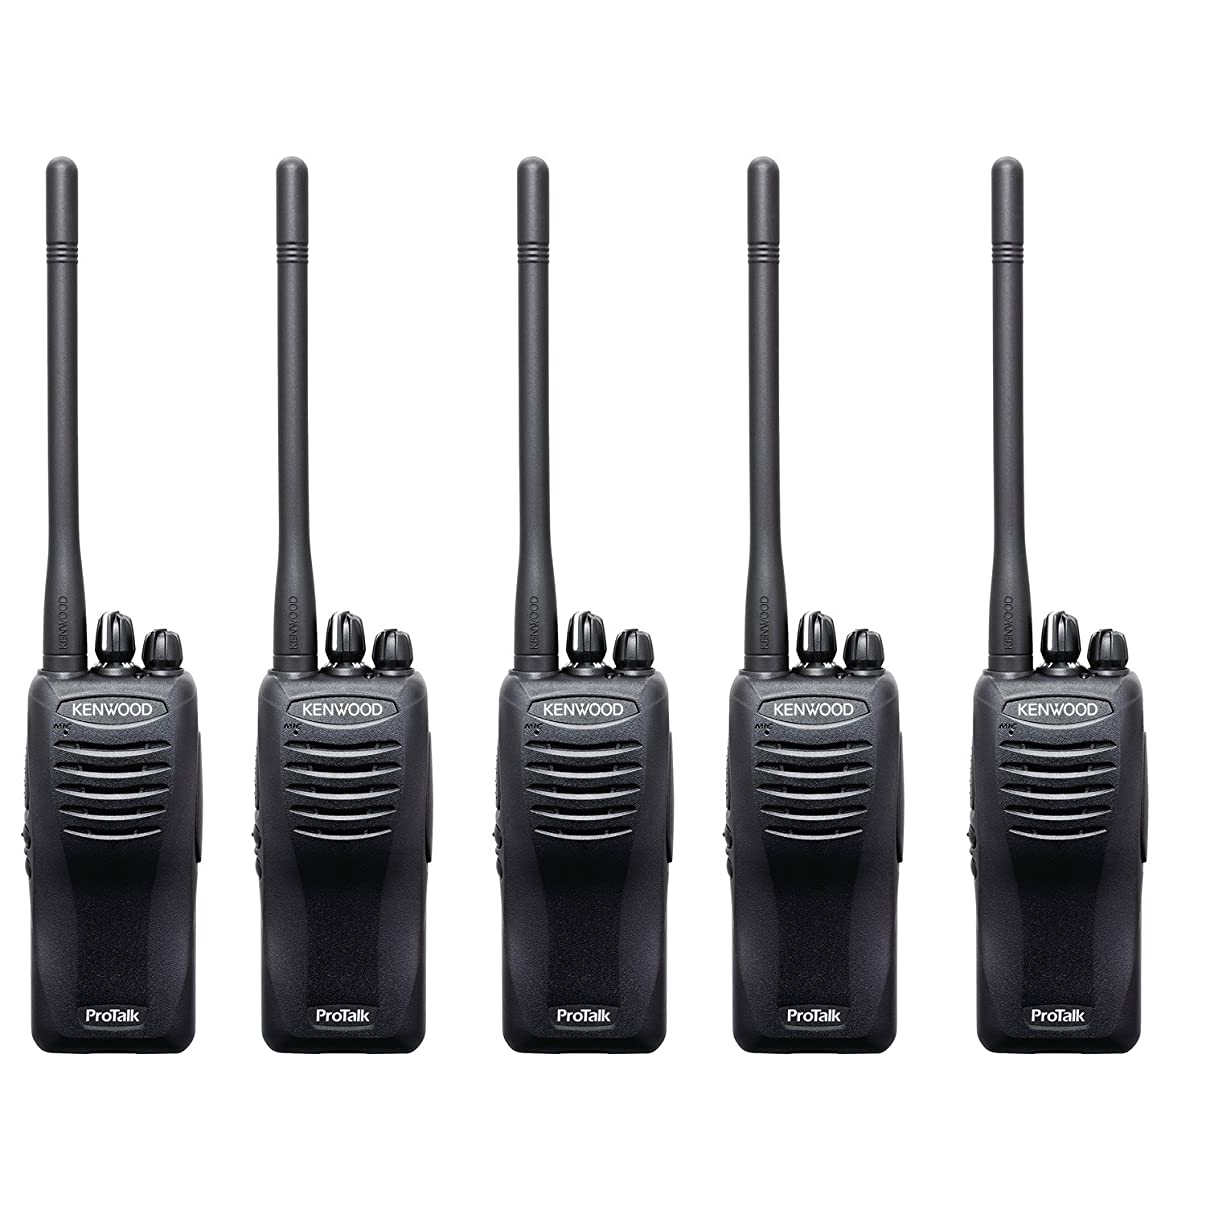 Kenwood ProTalk TK-2400V16P Compact VHF FM Portable 2-Way Radio (Pack of 5), 16 Total Channels, 2.0 Watt Output Power, 220000 Sq. Ft. / 13 Floor / 6 Mile Range